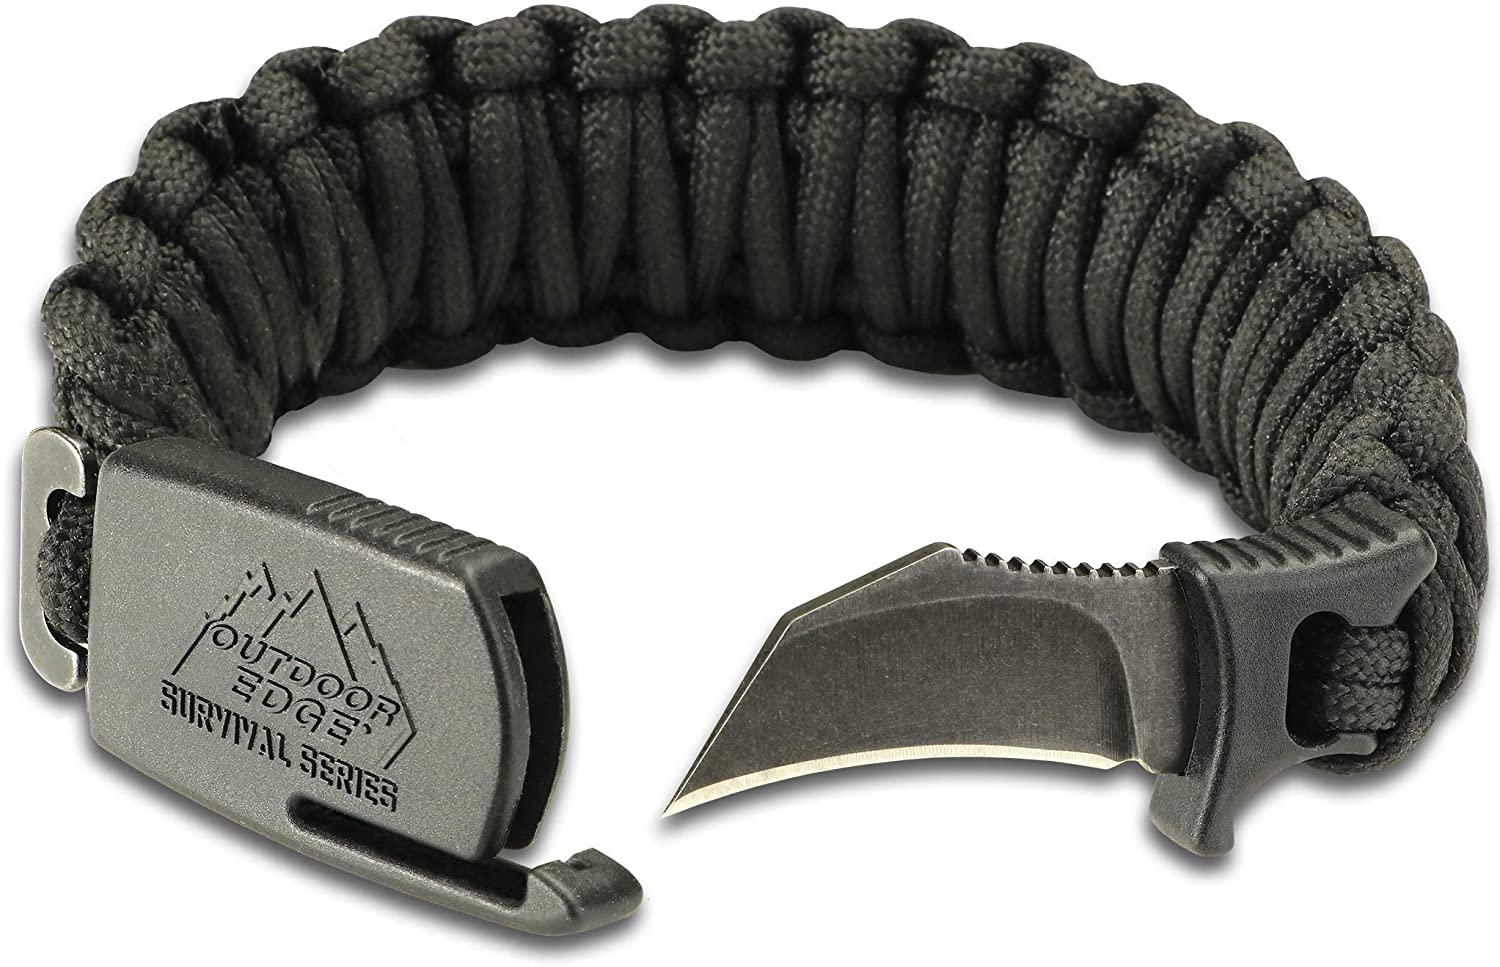 Black Outdoor Edge ParaClaw Paracord Survival Bracelet with 1.5-inch knife